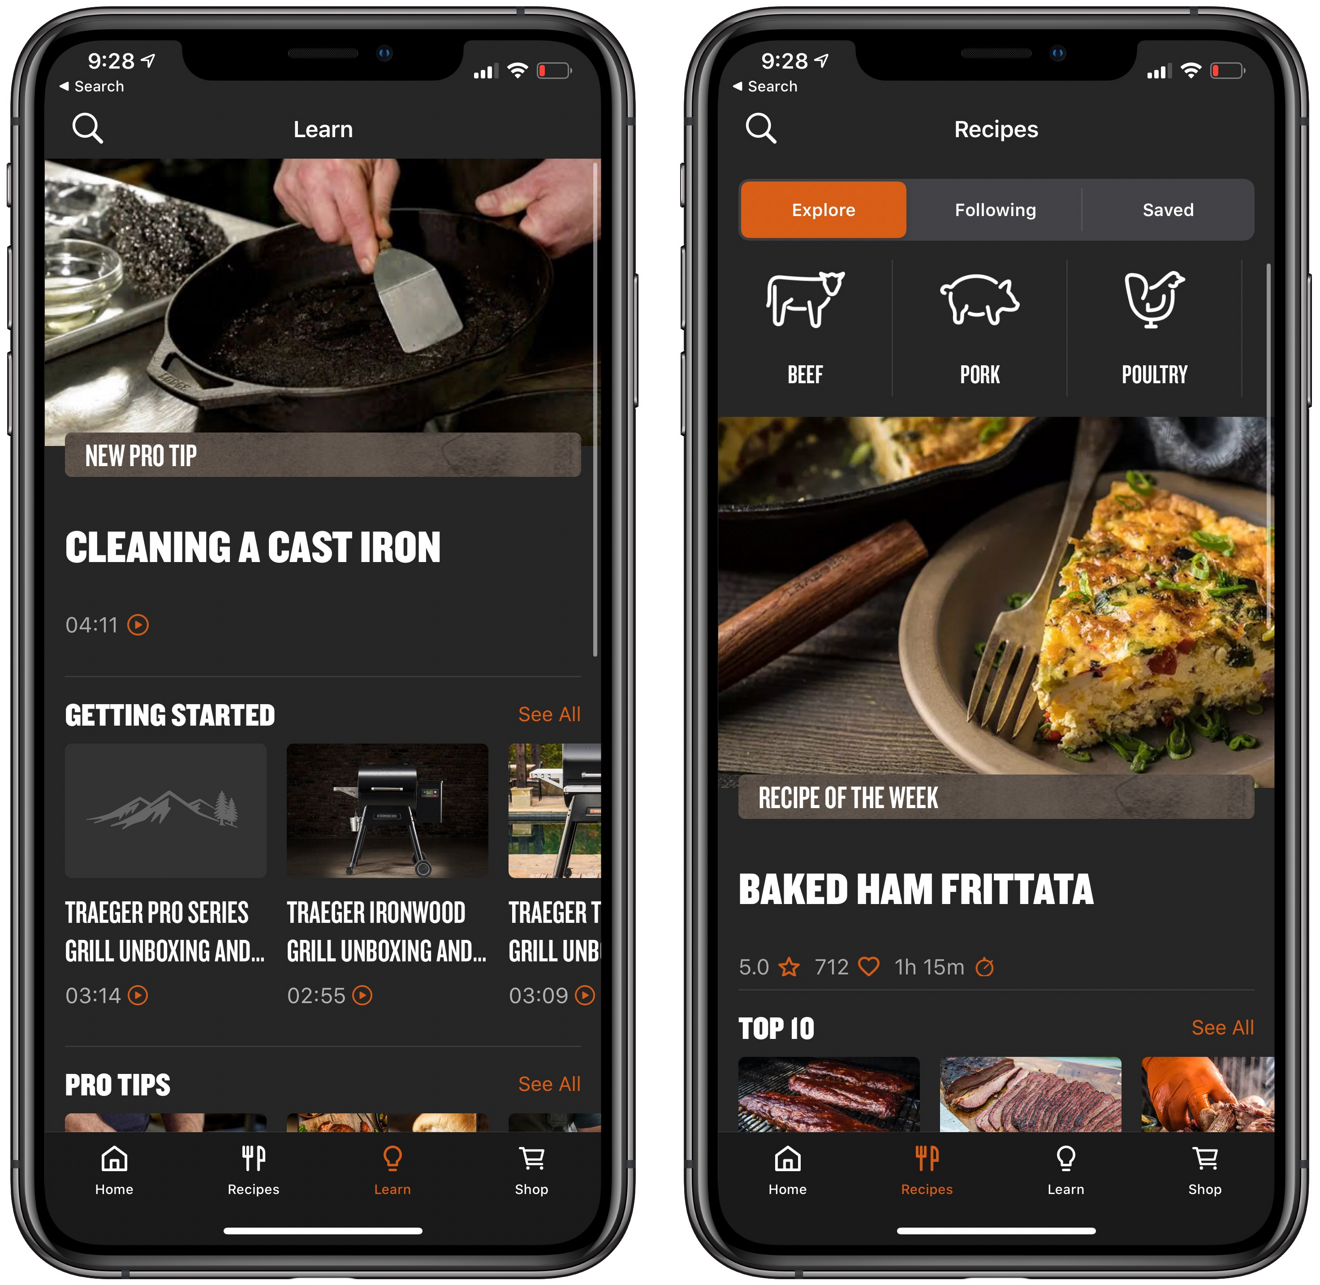 Get recipes and tips in the Traeger app